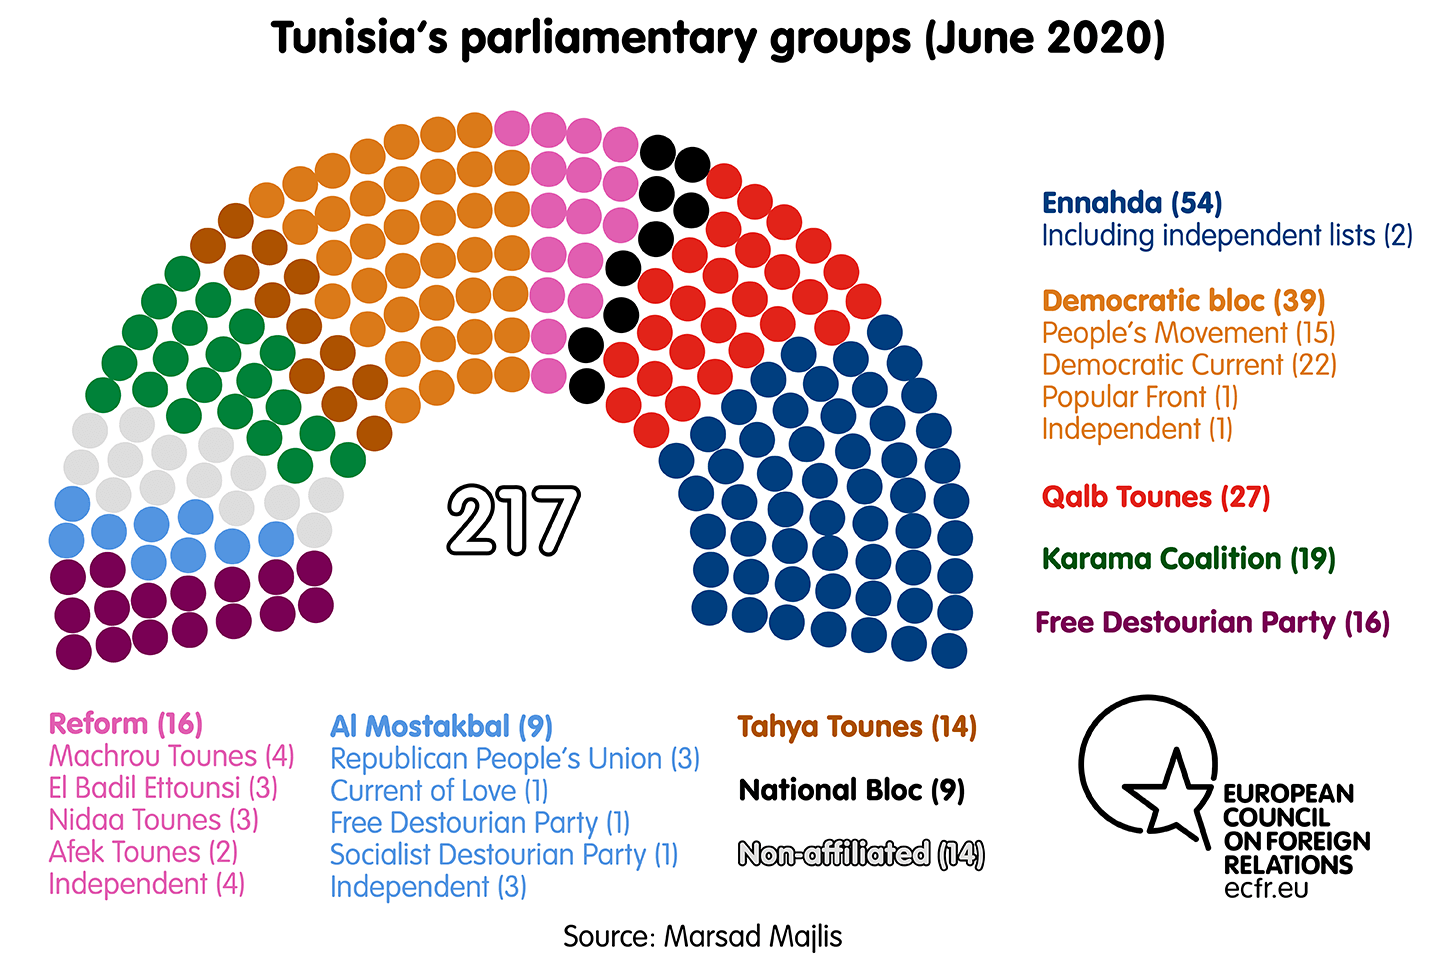 Tunisia's parliamentary groups (June 2020)